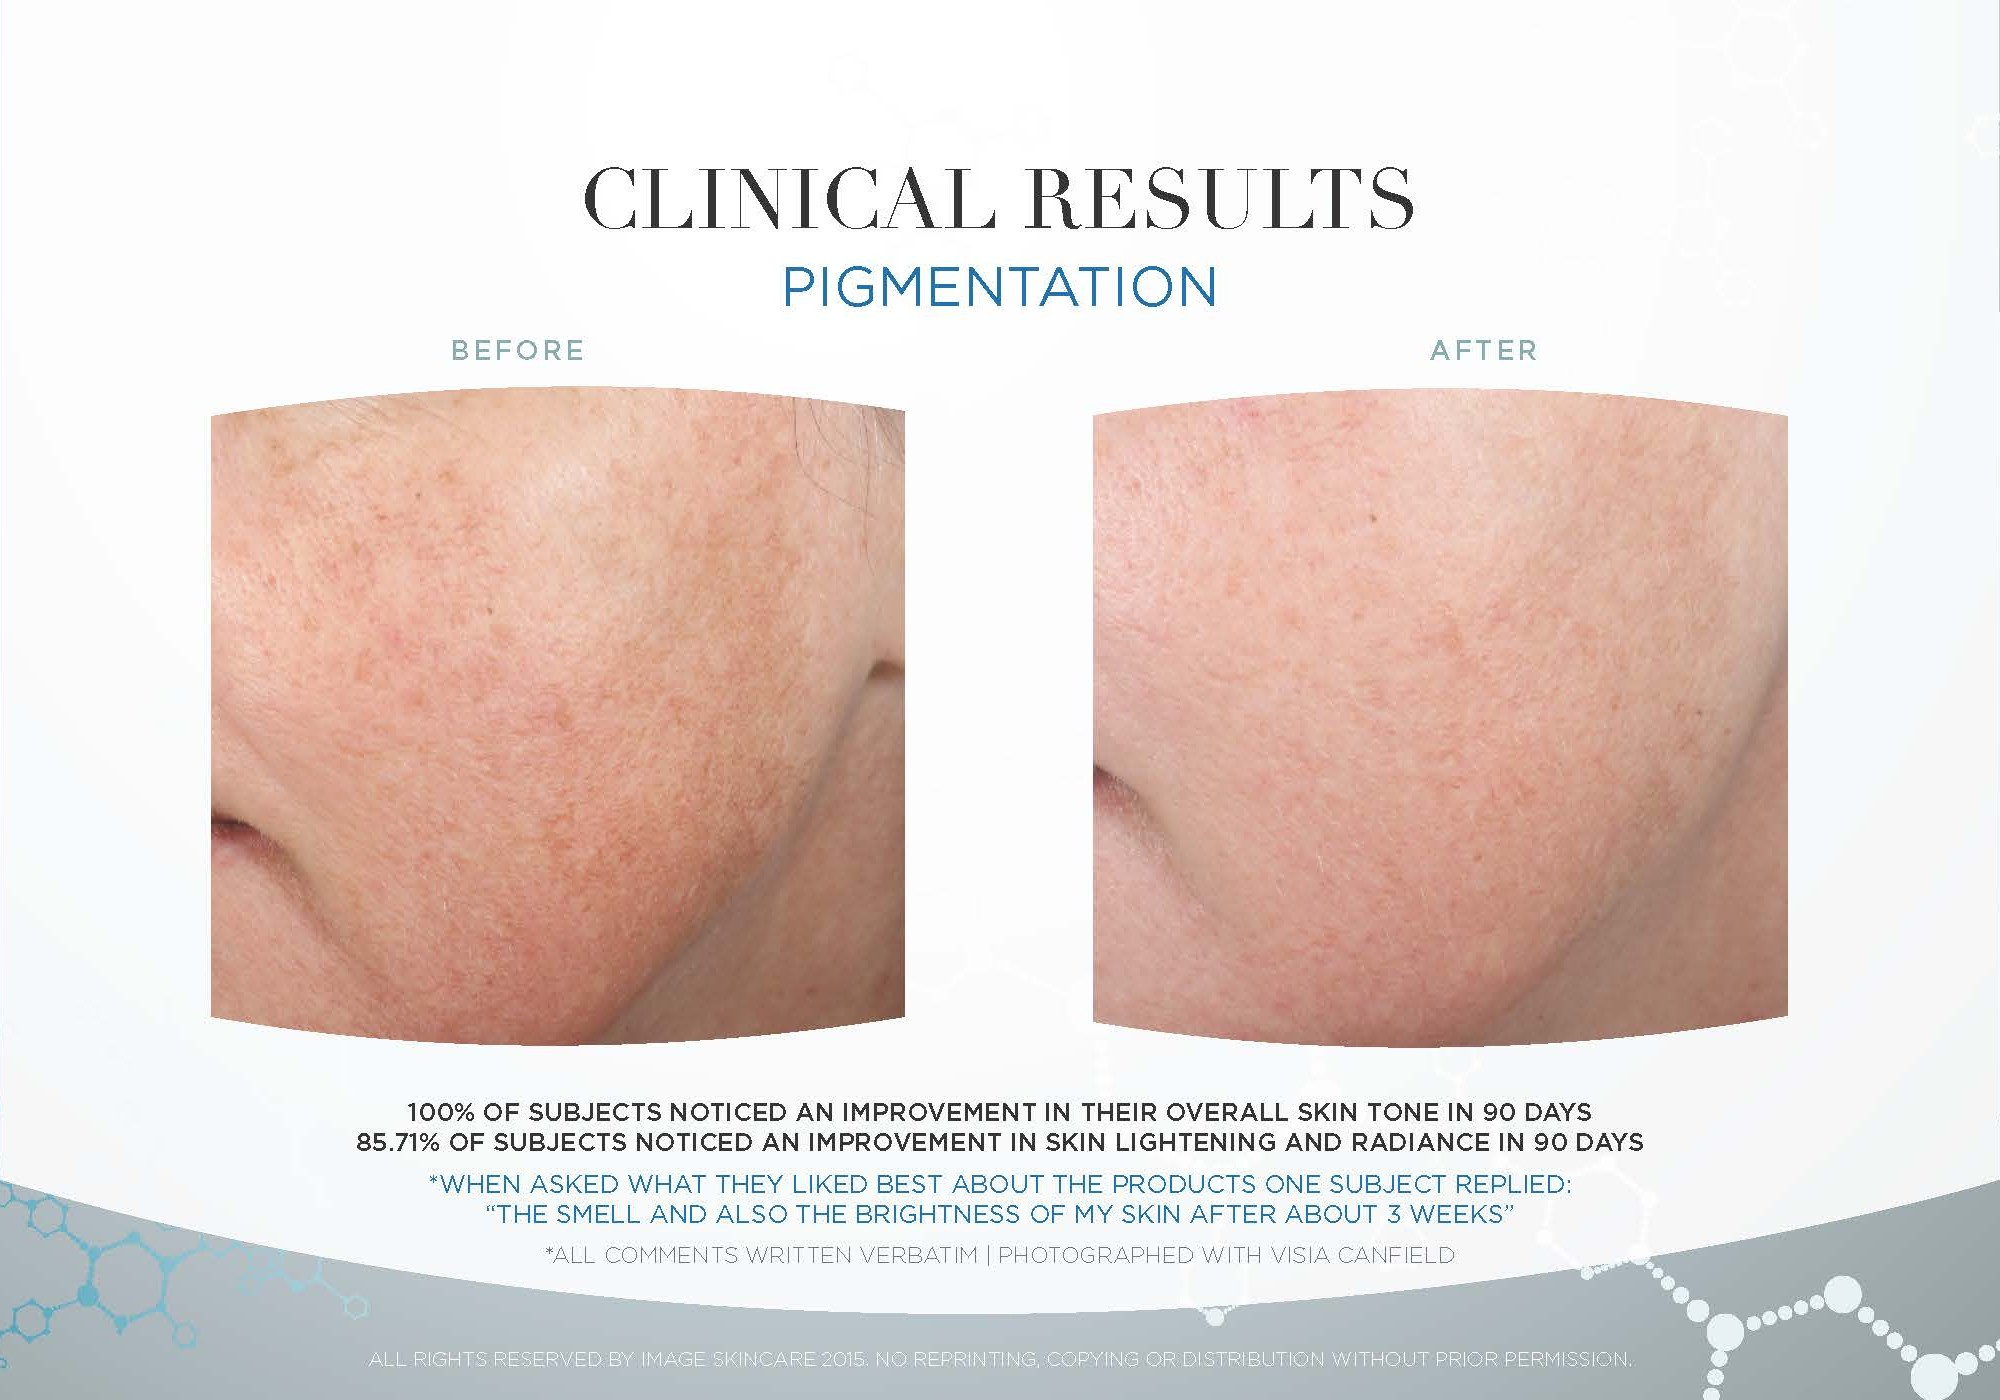 Pigmentation-Clinical-Study-Photos